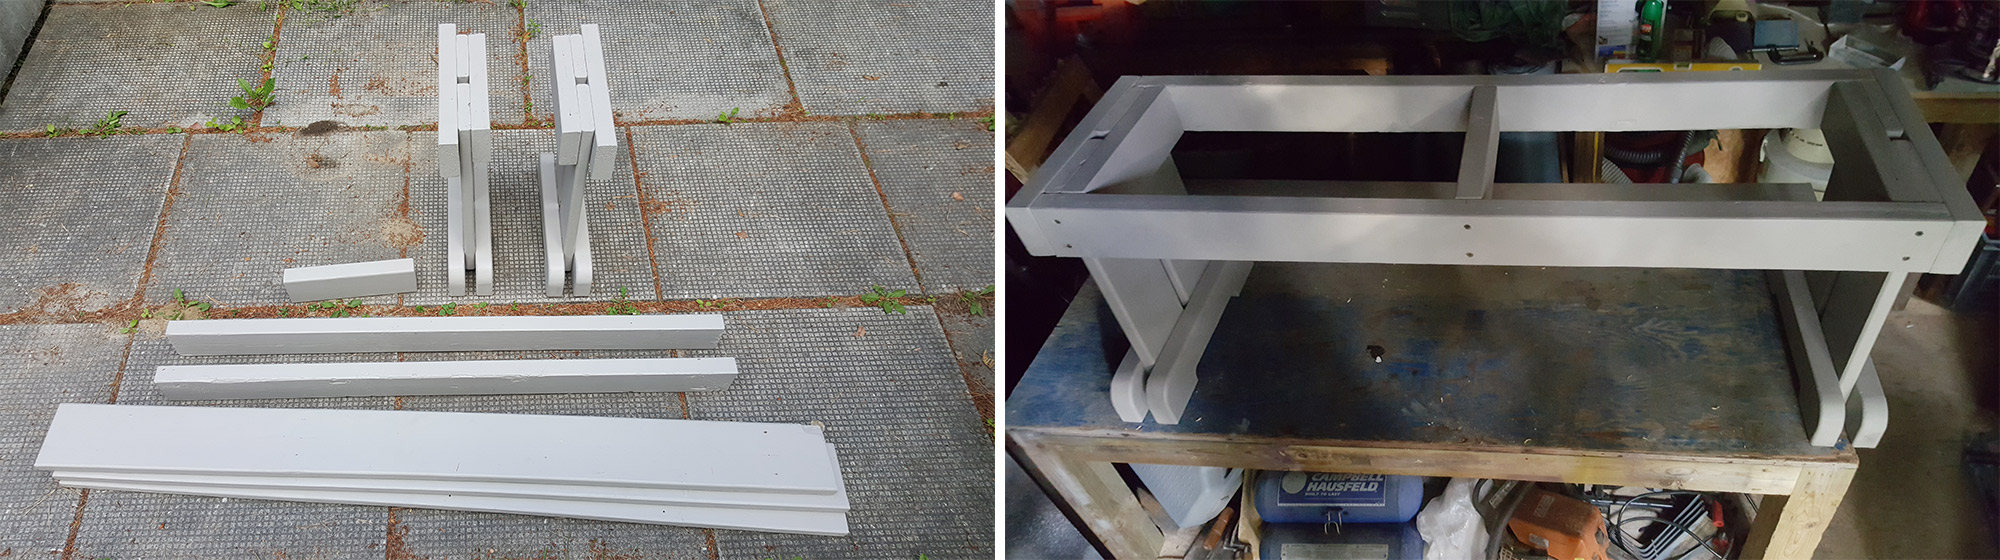 Left: Parts ready for assembly. Right: Assembling the bench.